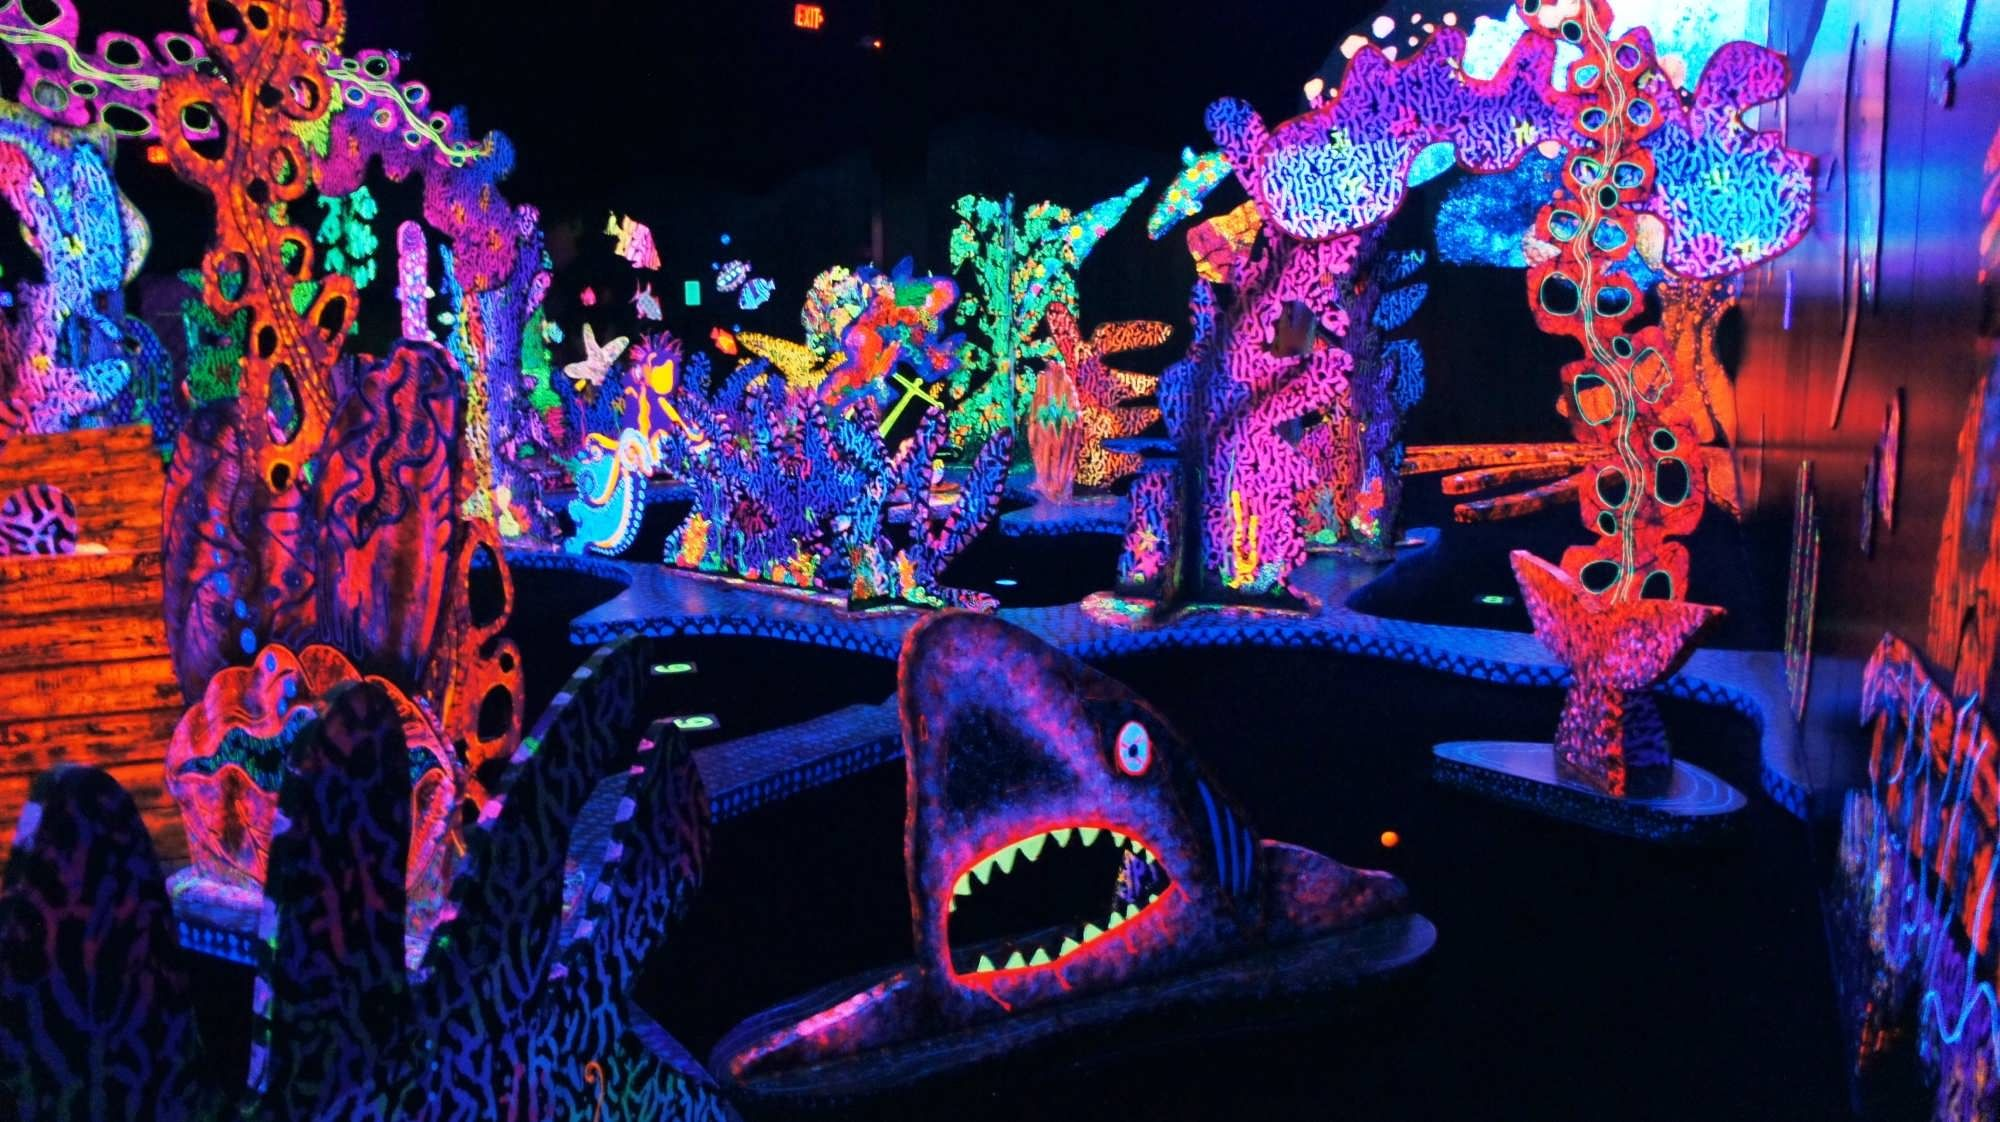 Putting Edge Glow In The Dark Mini Golf At Festival Bay Mall In